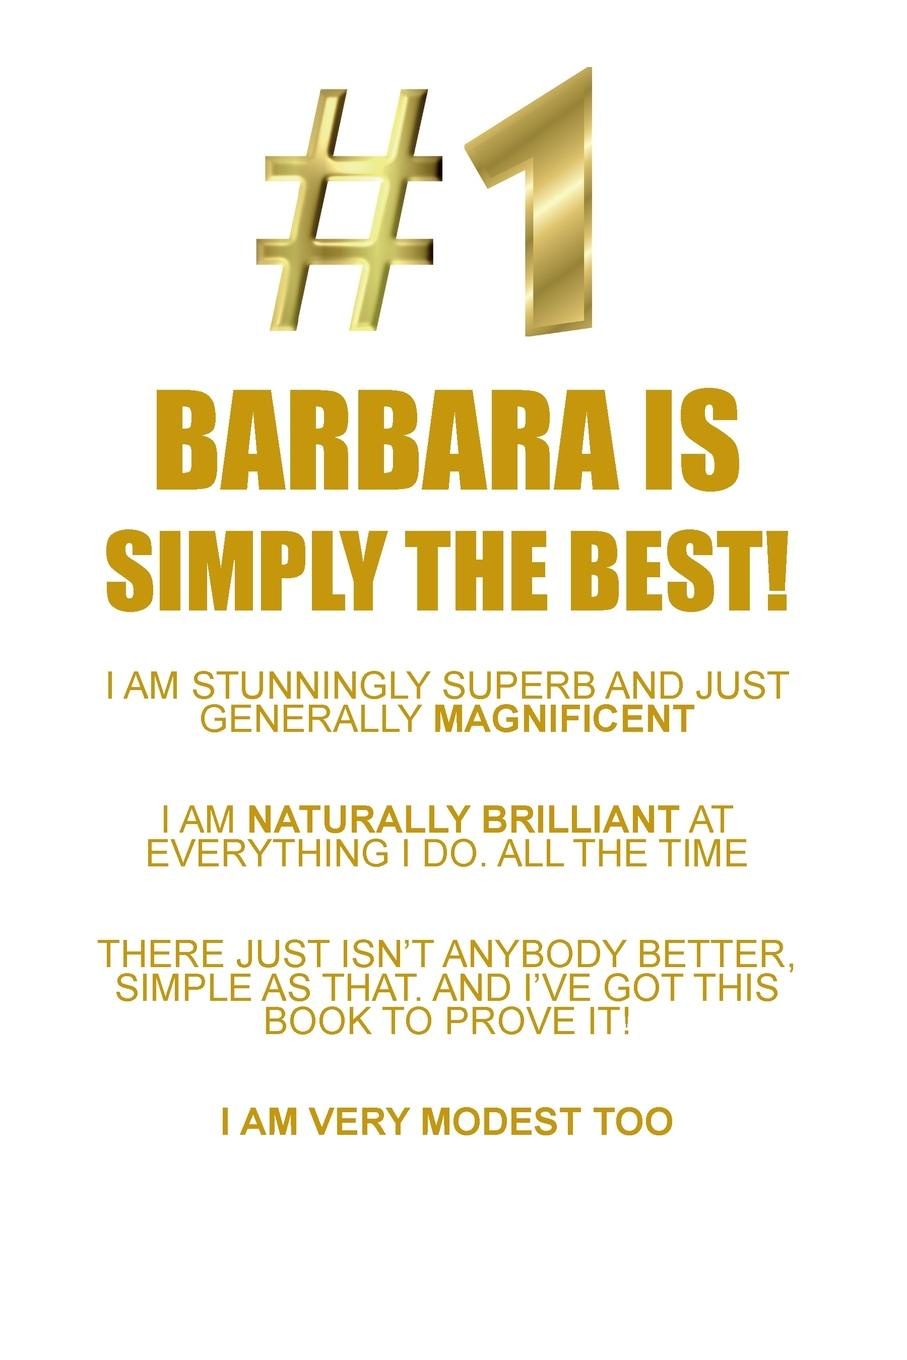 BARBARA IS SIMPLY THE BEST AFFIRMATIONS WORKBOOK Positive Affirmations Workbook Includes. Mentoring Questions, Guidance, Supporting You